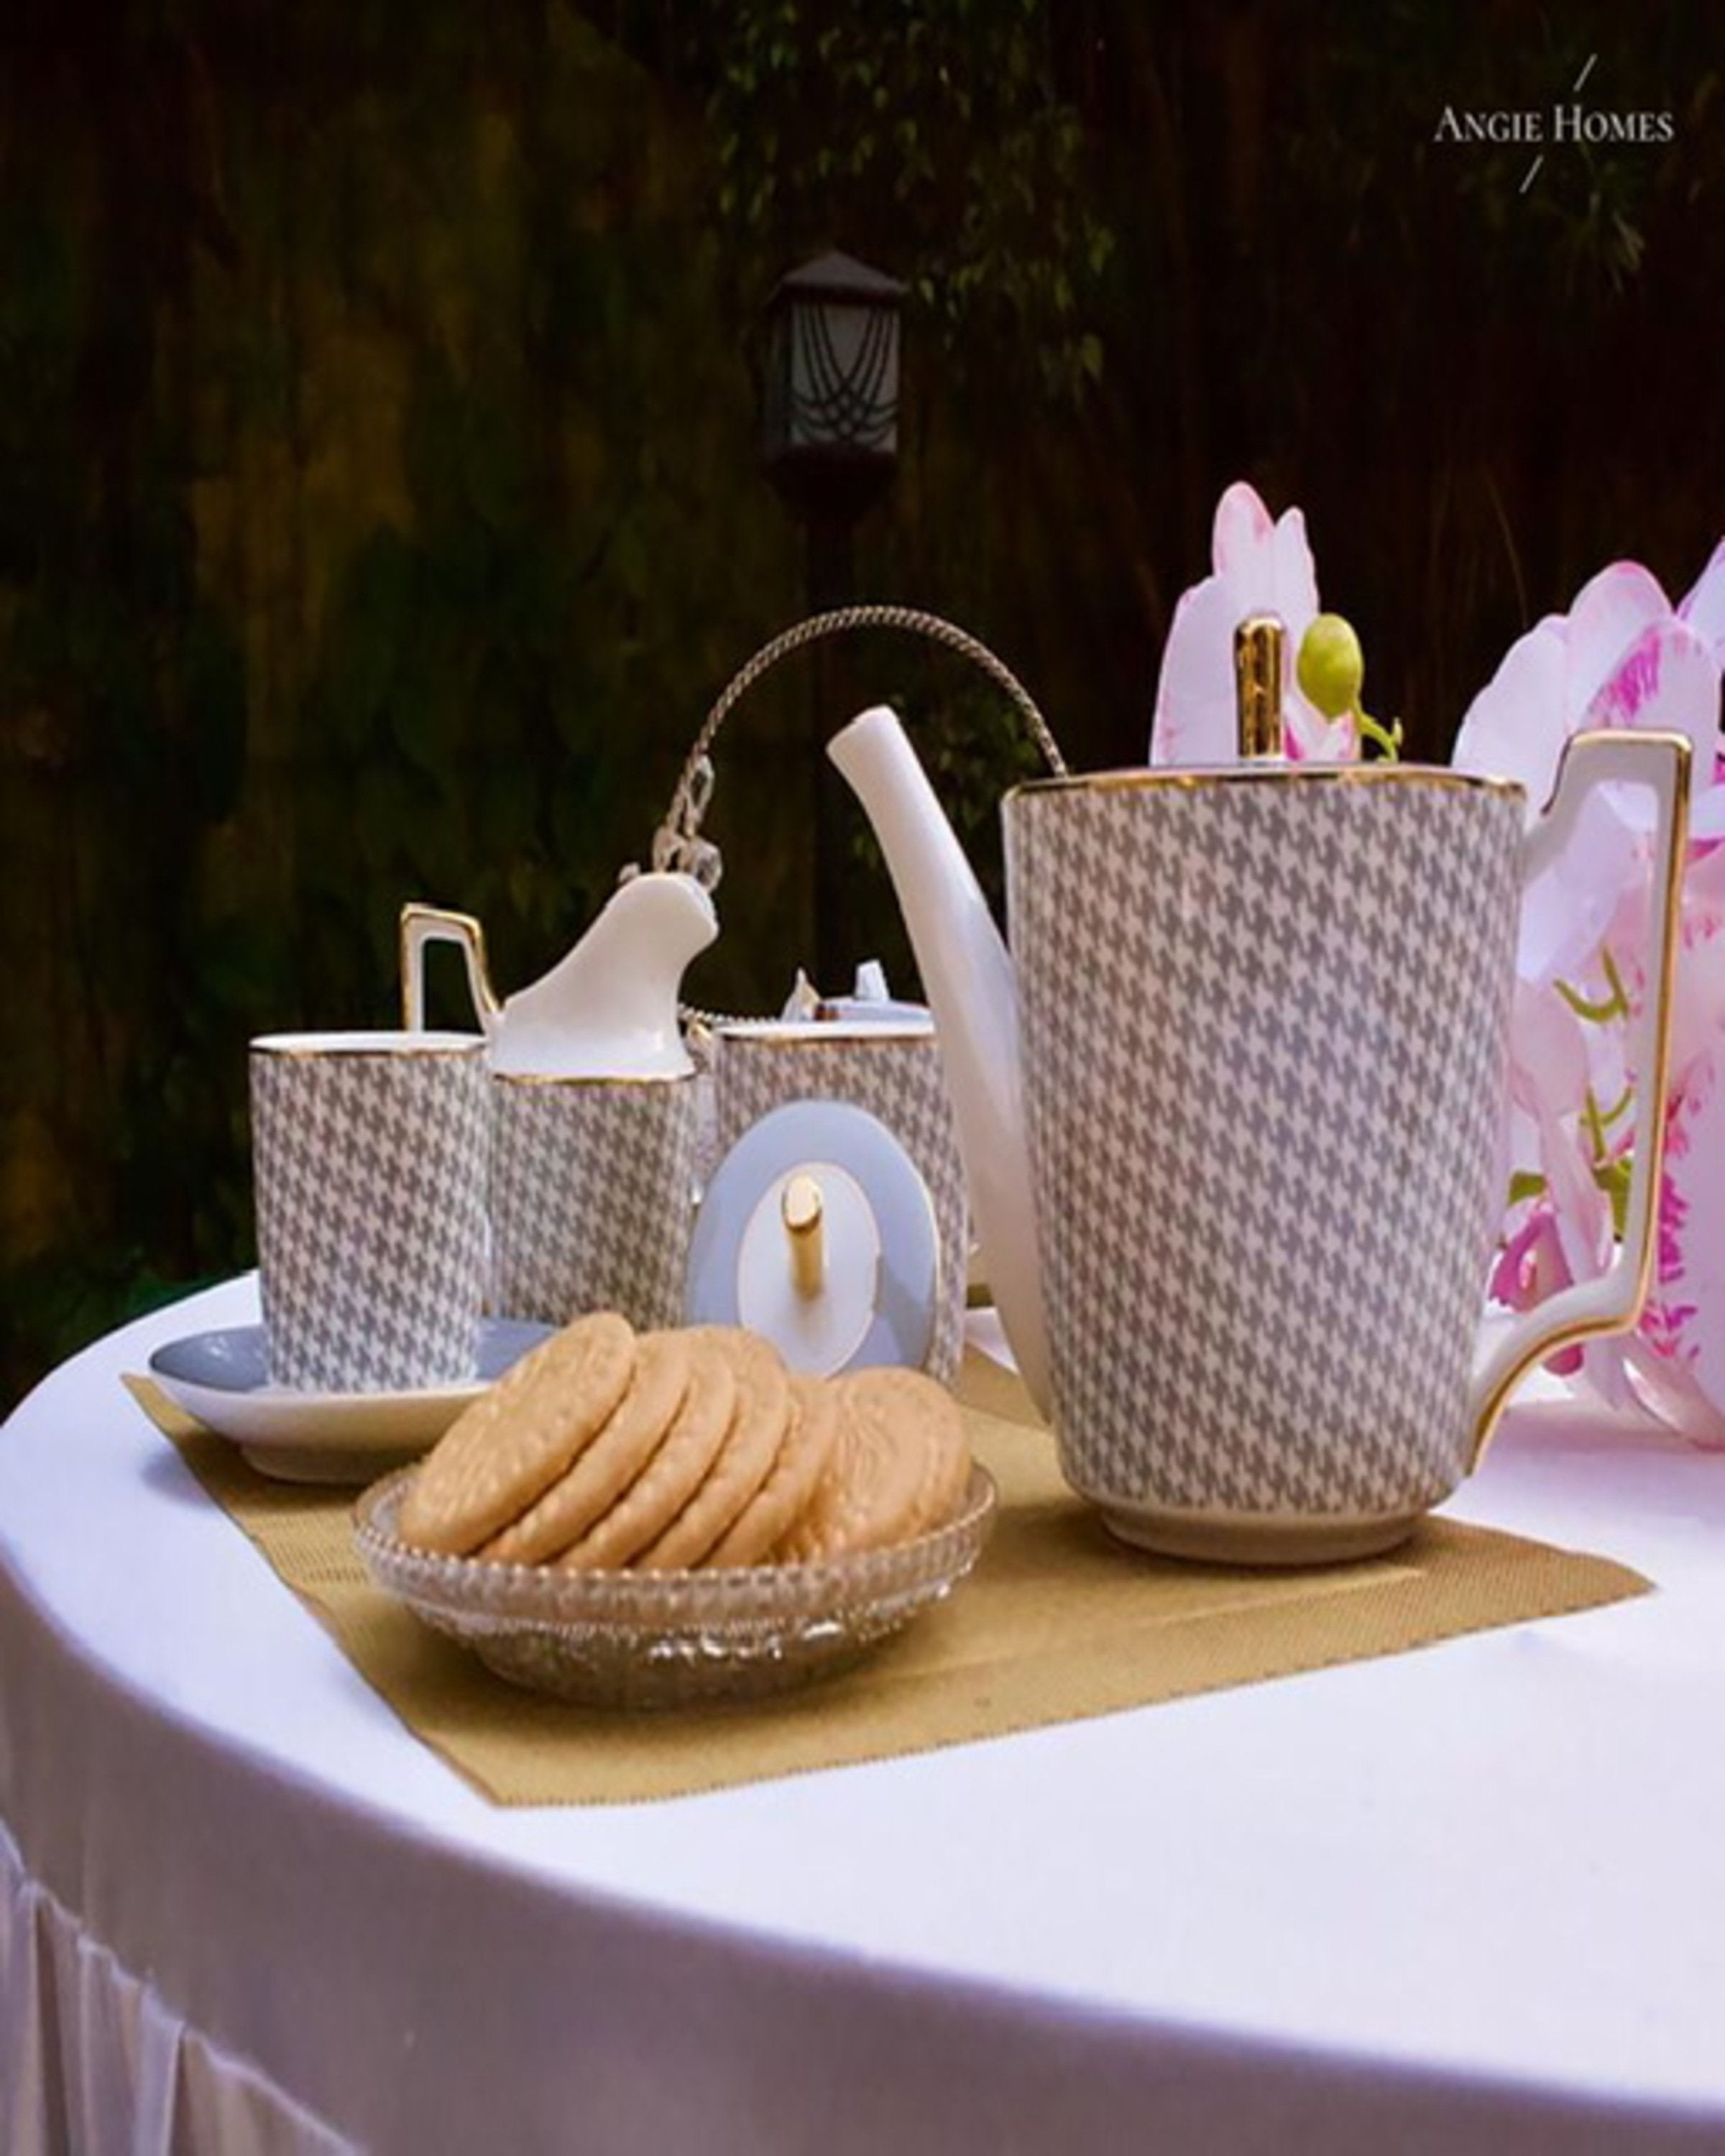 WINTER VALLEY TEA SET ANGIE HOMES